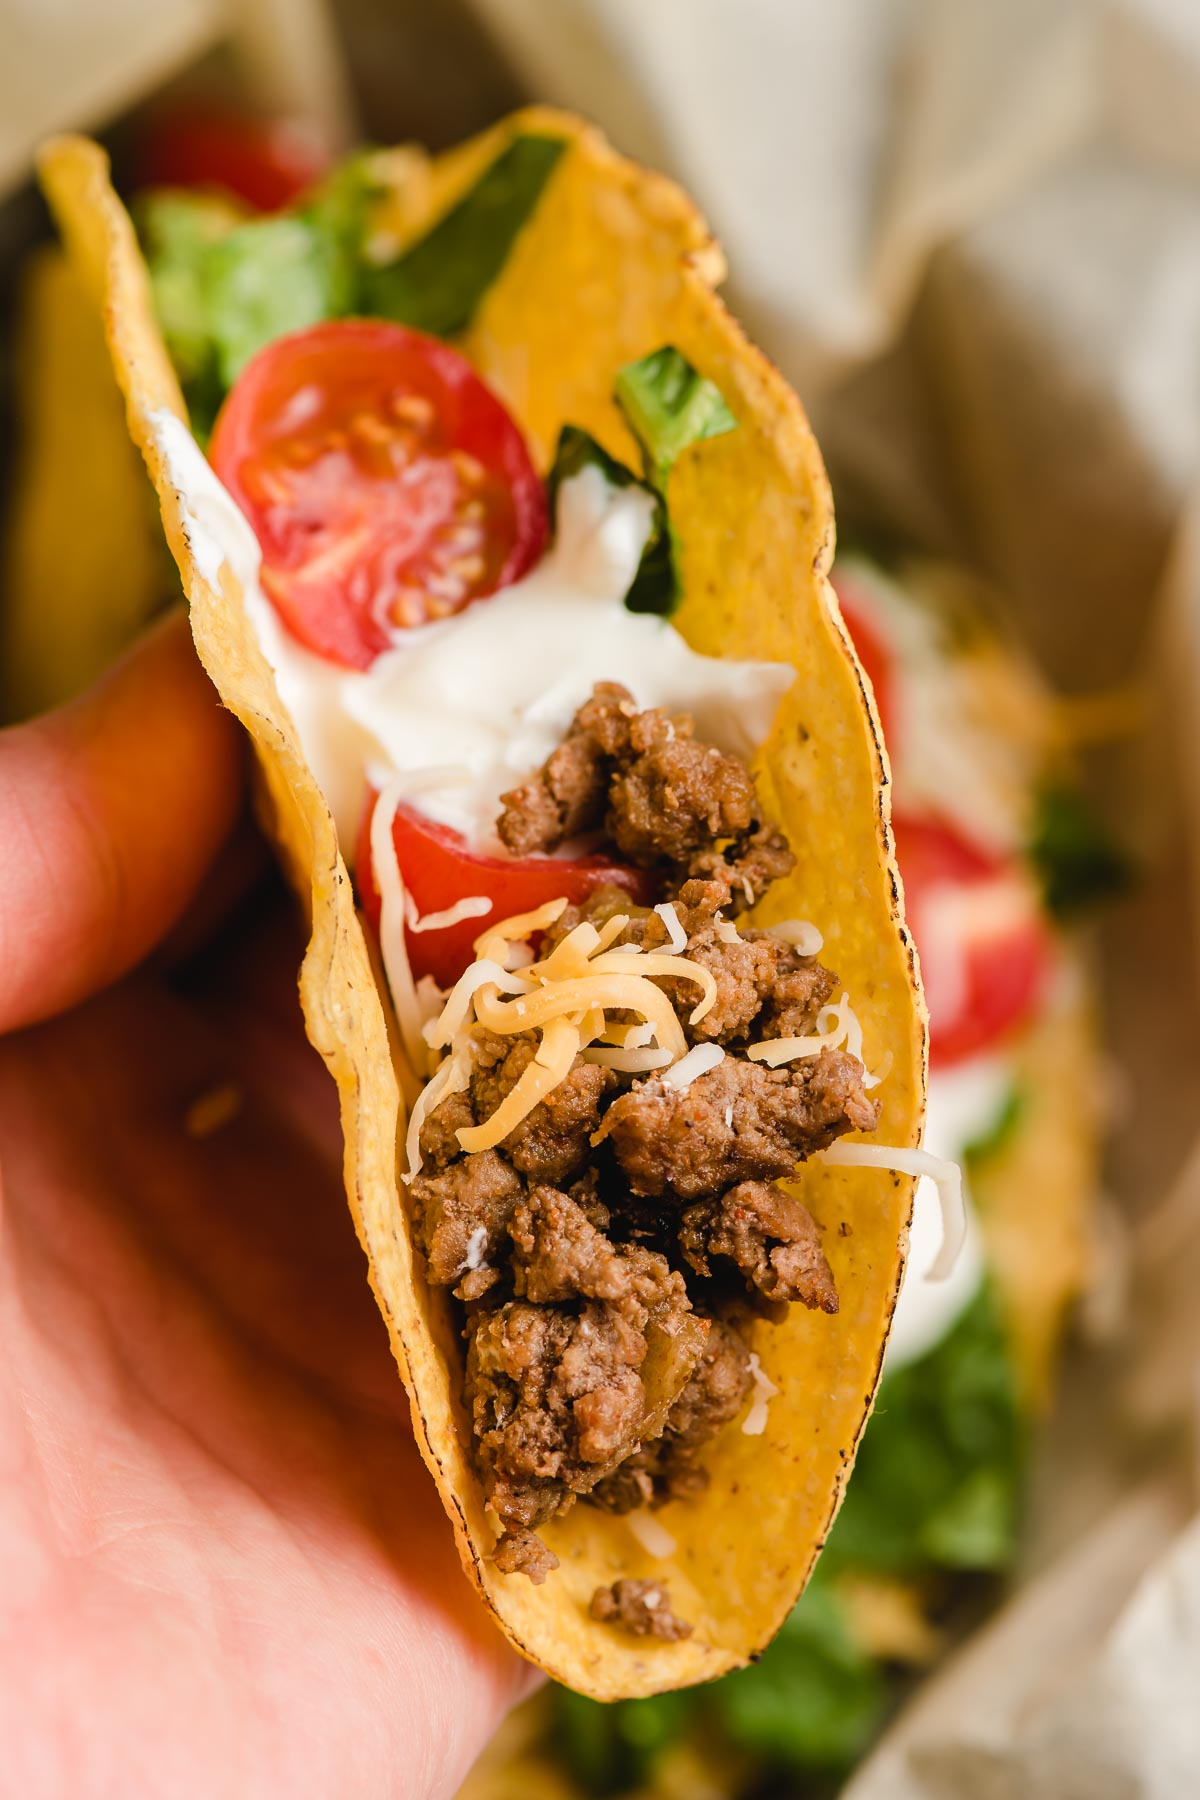 A crunchy taco with slow cooker taco meat inside.